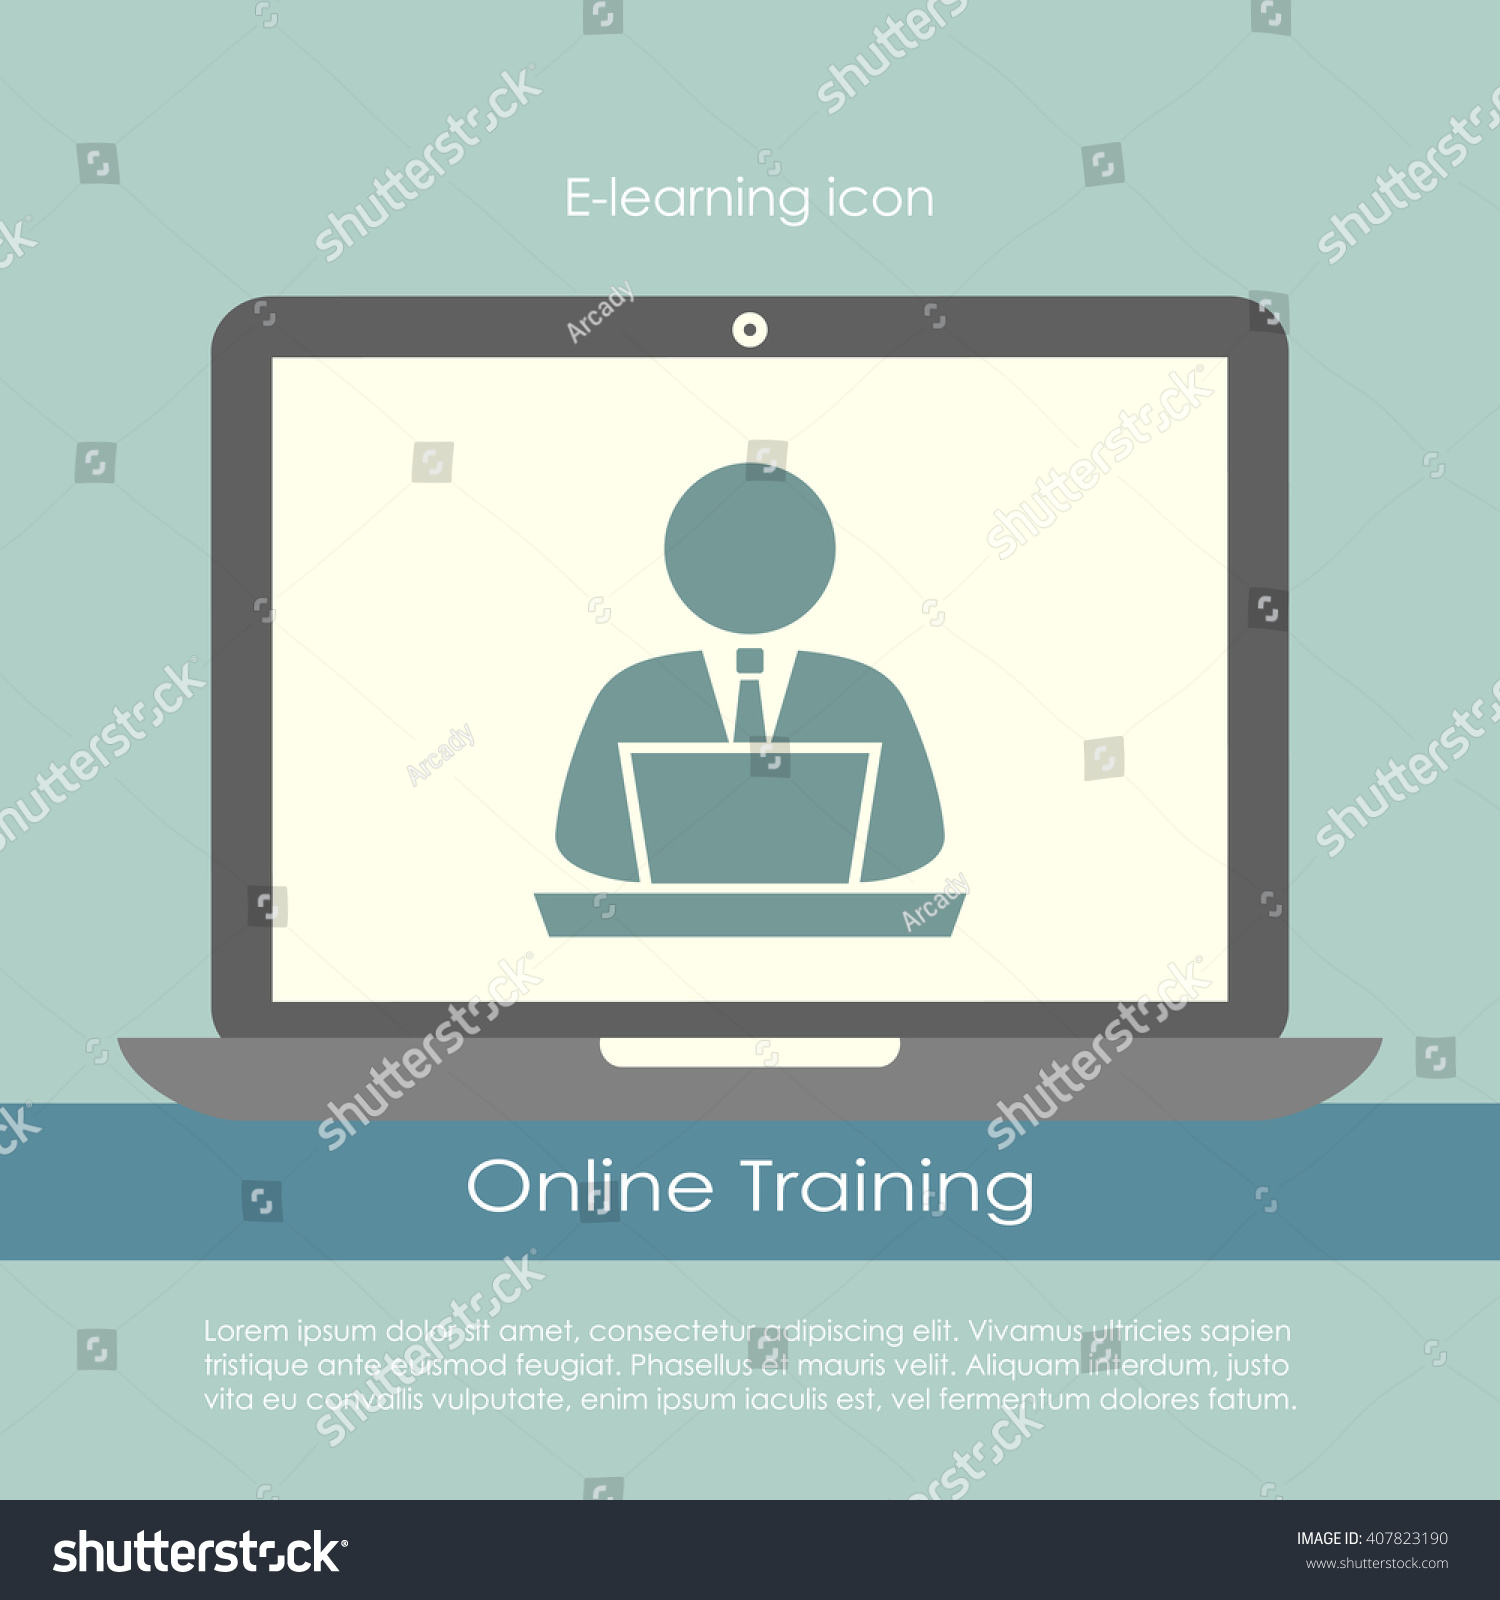 E learning poster designs - E Learning Poster Design Vector Illustration